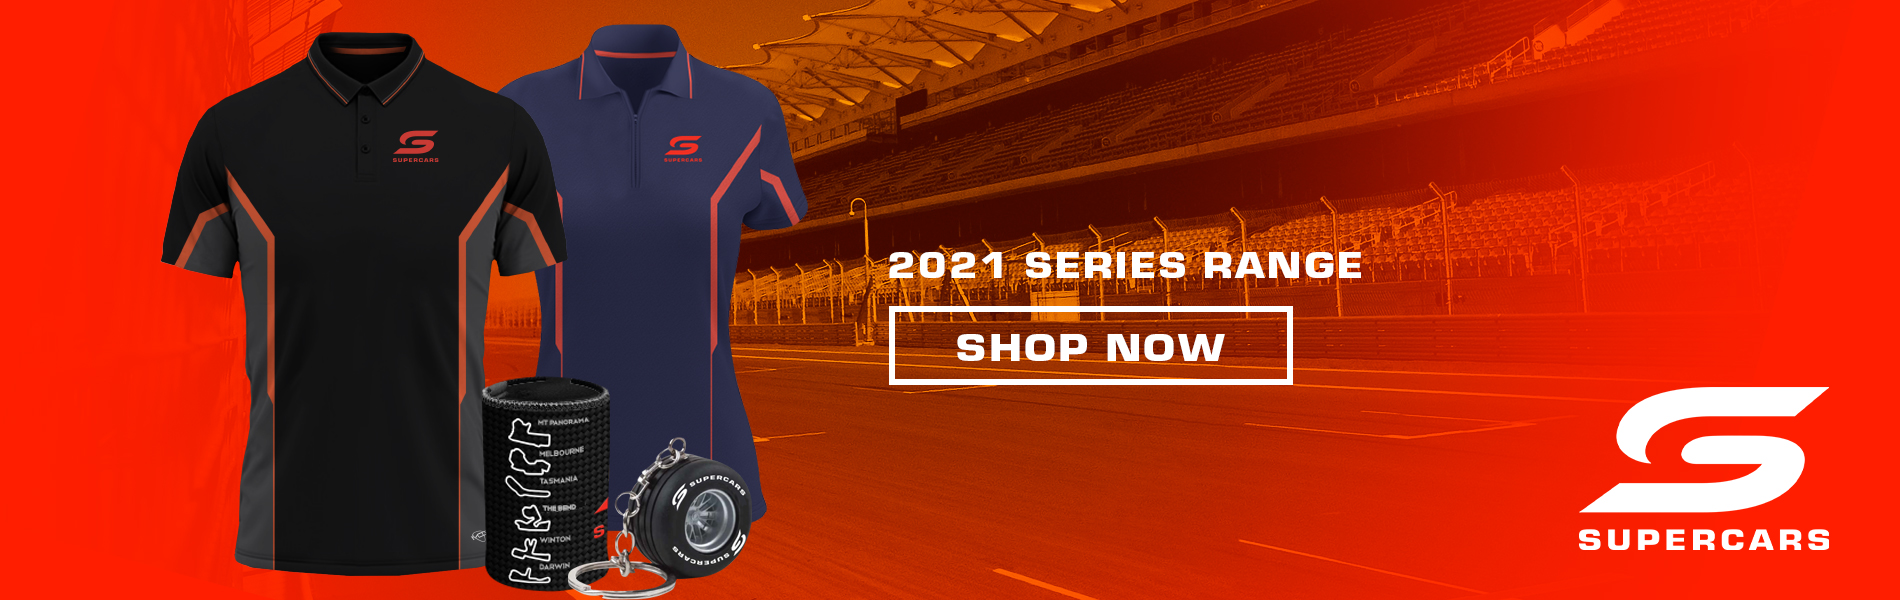 Supercars-series-homepage-banner-3RD